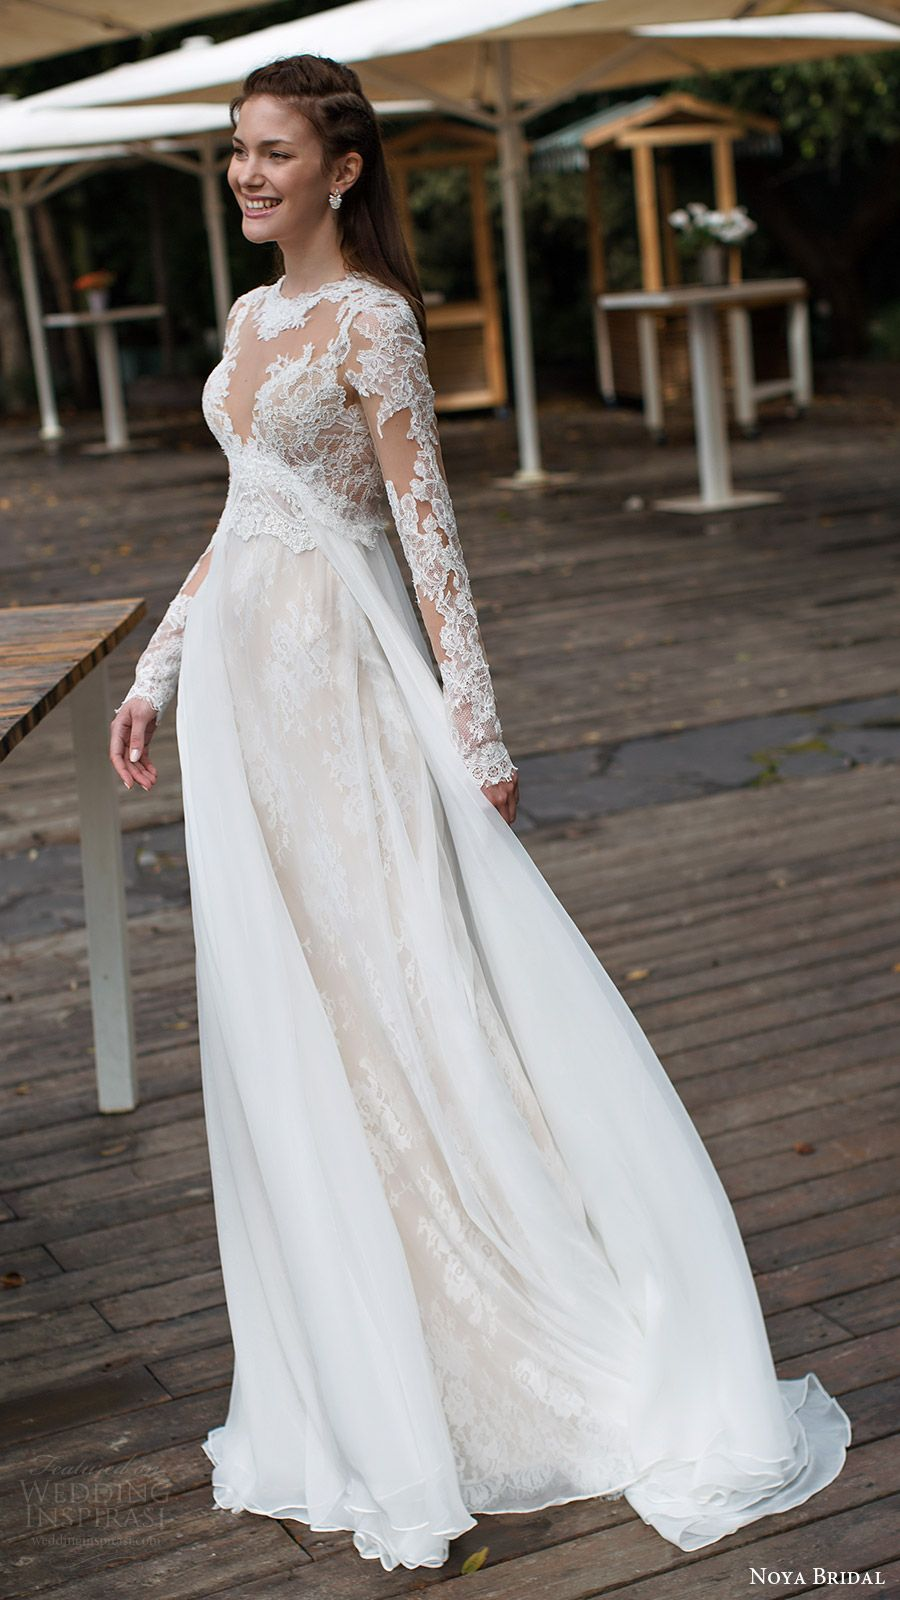 Noya Bridal Aria Wedding Dress Collection For 2016 Crazyforus